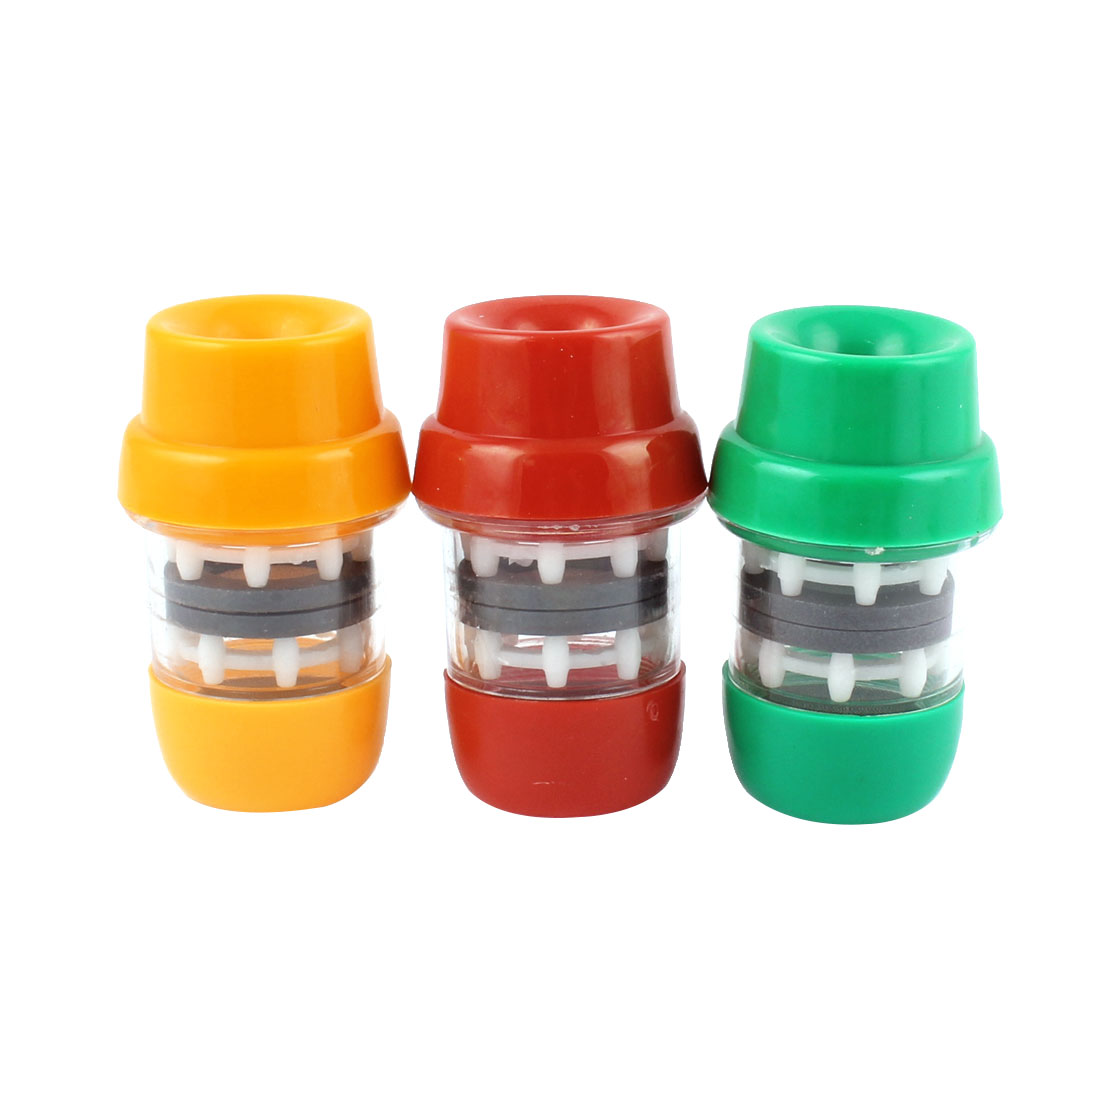 Plastic Health Water Purifying Tap Faucet Magnetic Filter 3pcs Assorted Color